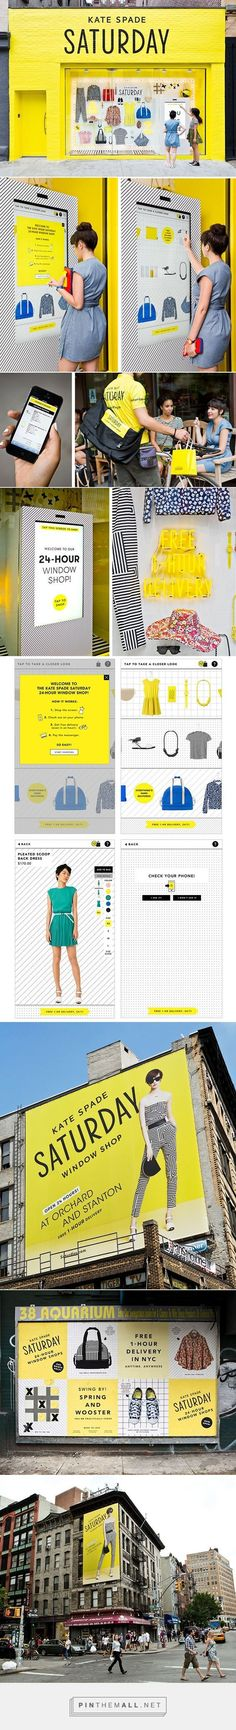 """Kate Spade Saturday 24-Hour Window Shops  It is a four one month pop-up window shops in New York City. Using a touch screen on the store windows shoppers could """"window shop"""" and have their purchases delivered anywhere in 1 hour—via bike messengers dressed in Kate Spade Saturday yellow"""